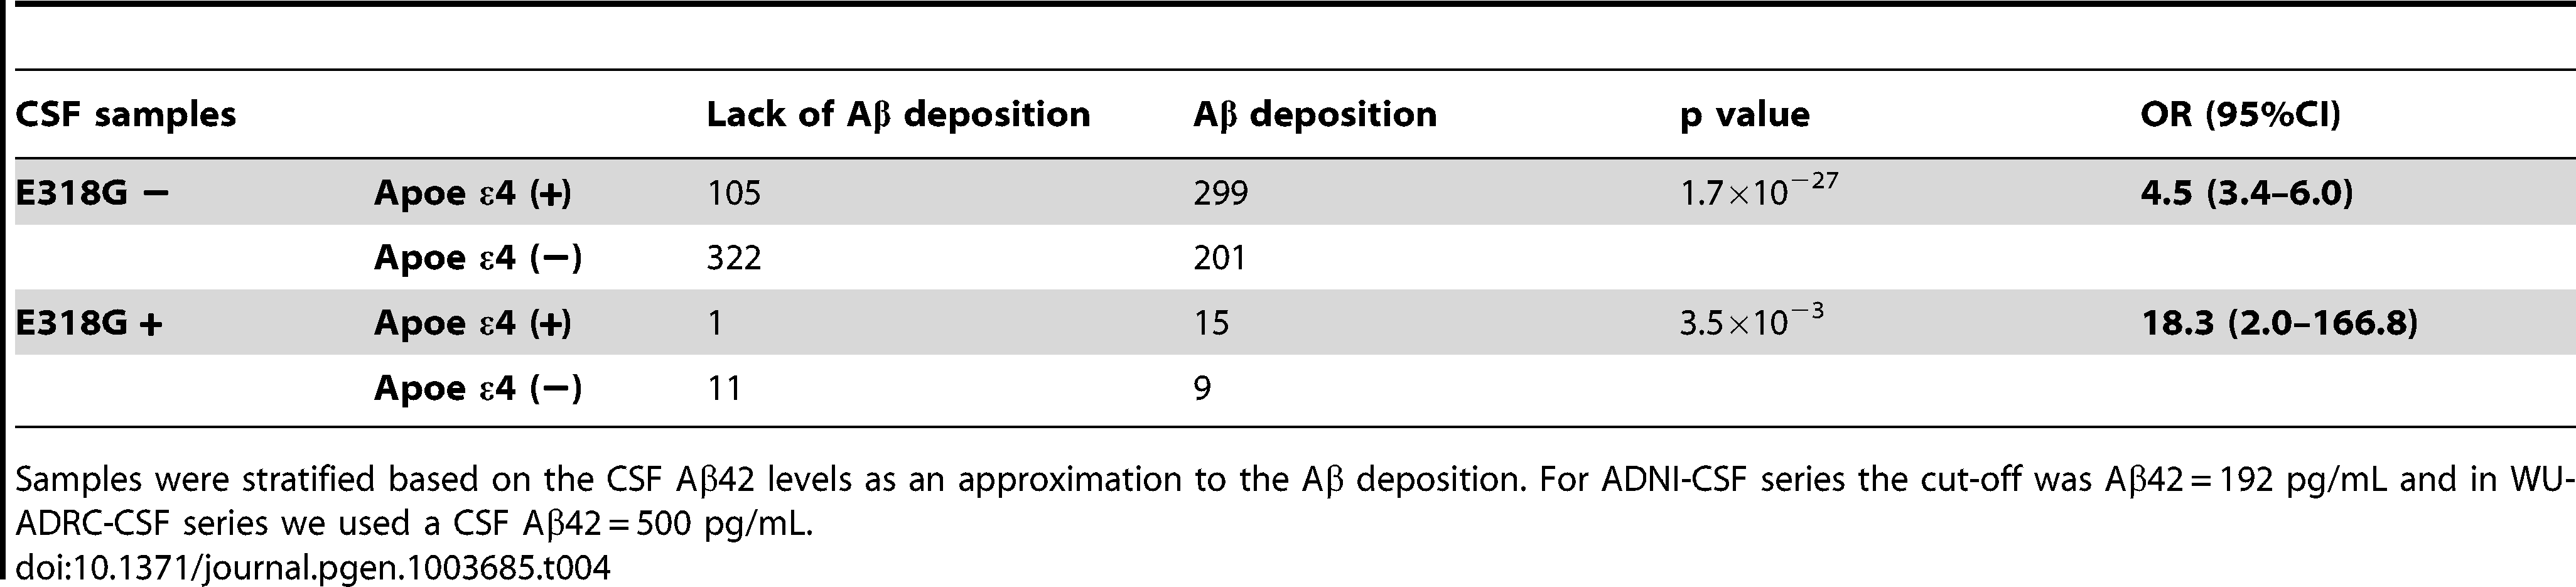 Effect of the interaction of <i>PSEN1</i> p.E318G with <i>APOE</i> in individuals with and without Aβ deposition.